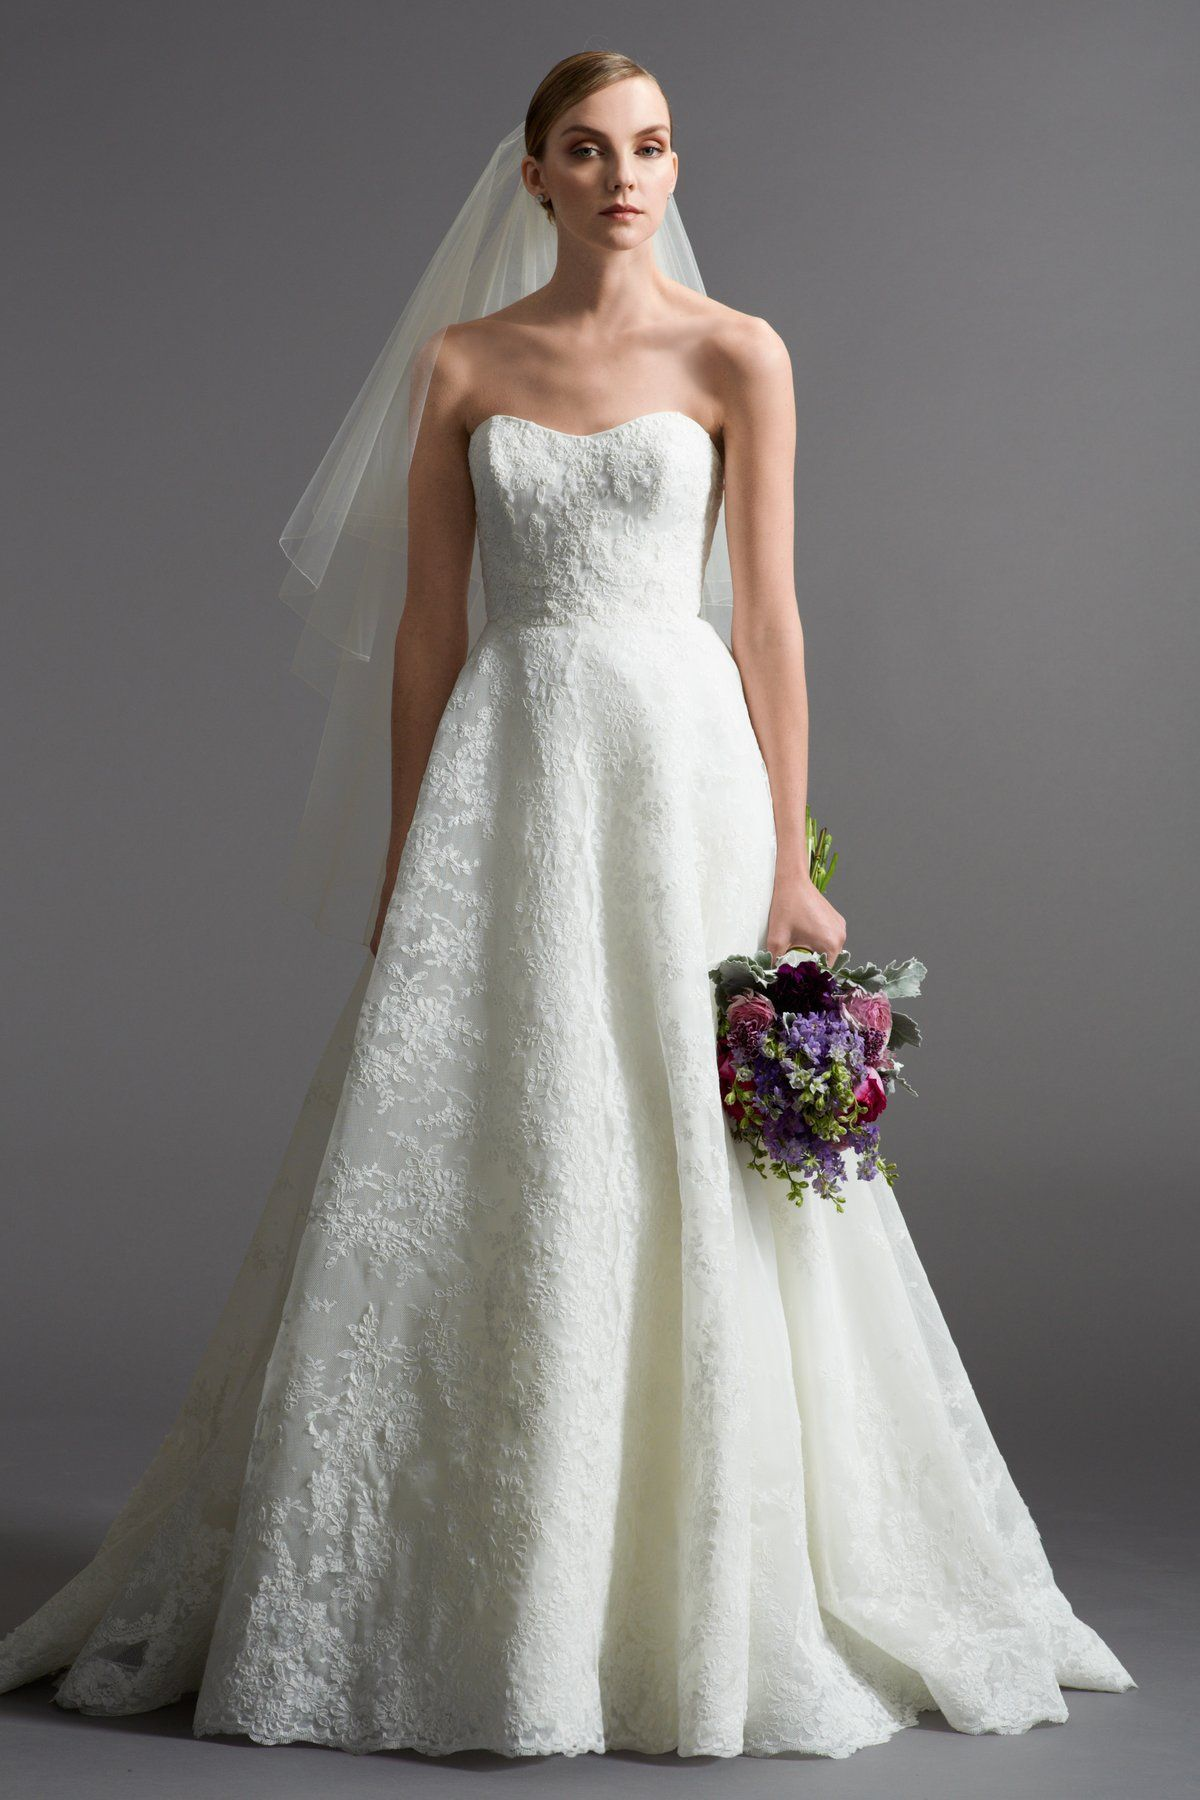 I could get similar dress tailor made watters brides maddalena i could get similar dress tailor made watters brides maddalena gown ombrellifo Choice Image